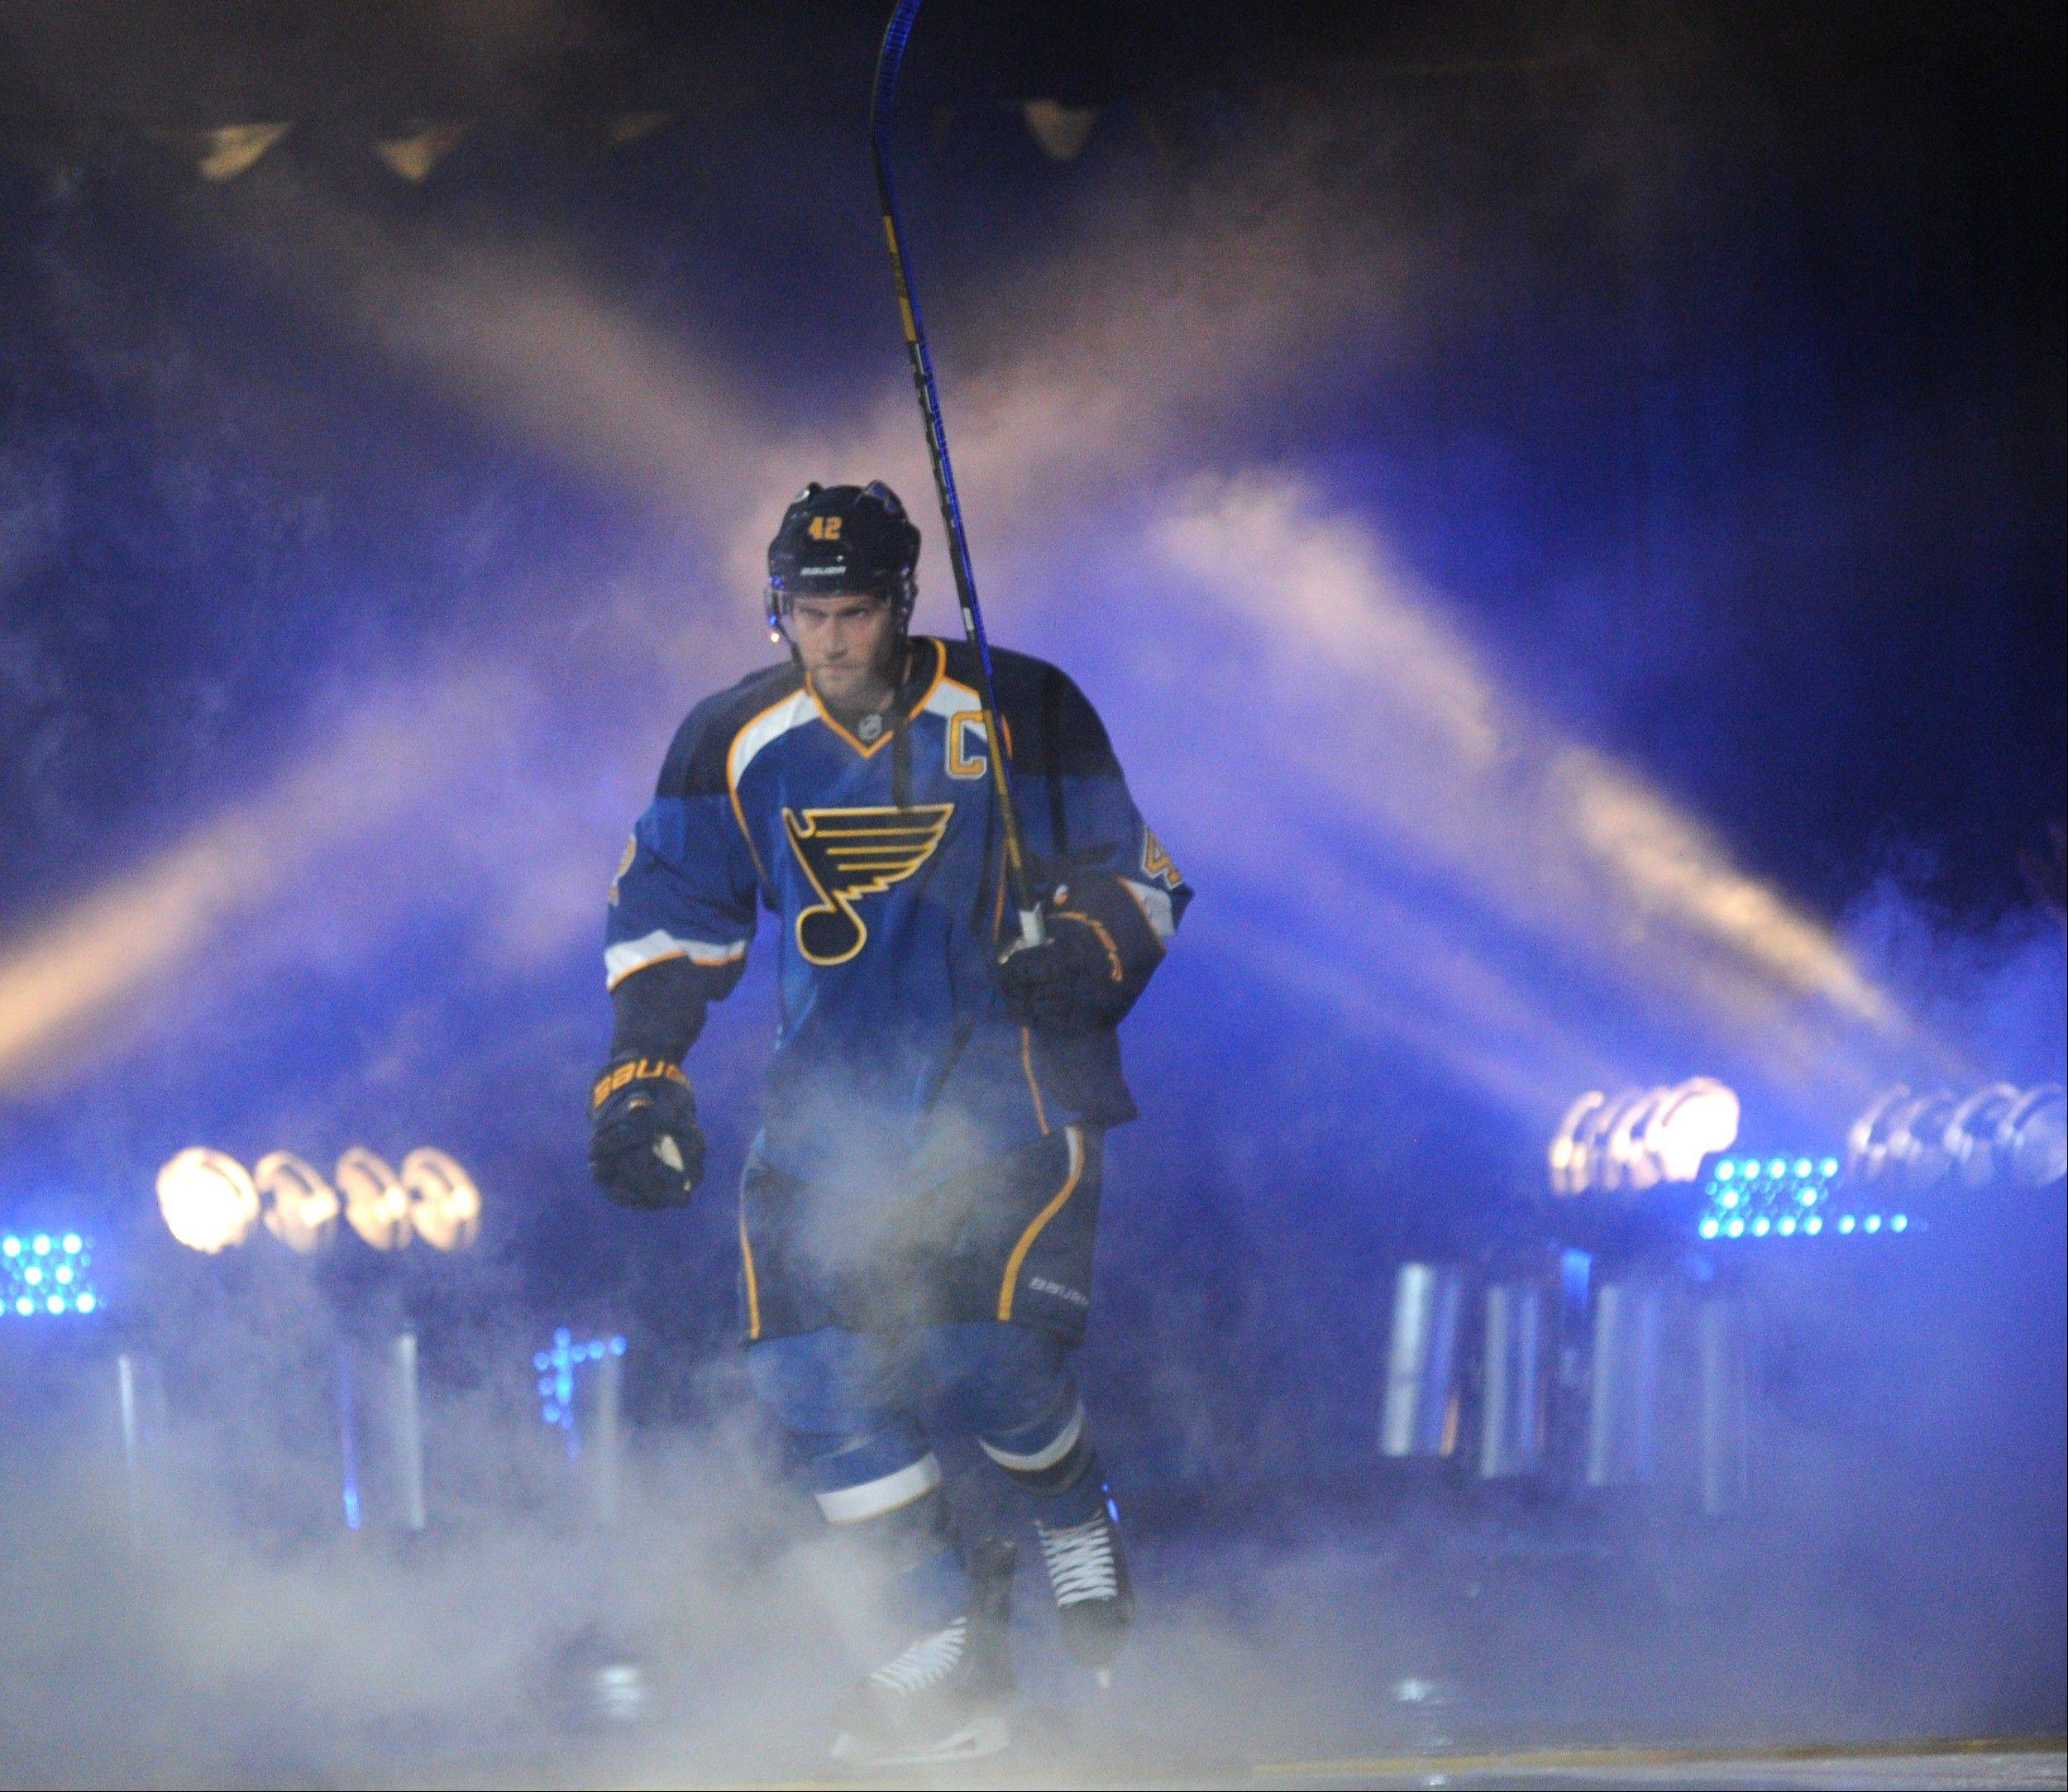 The Blues like to play a physical game, led by captain David Backes. The Blackhawks play their first road game Wednesday night at St. Louis.